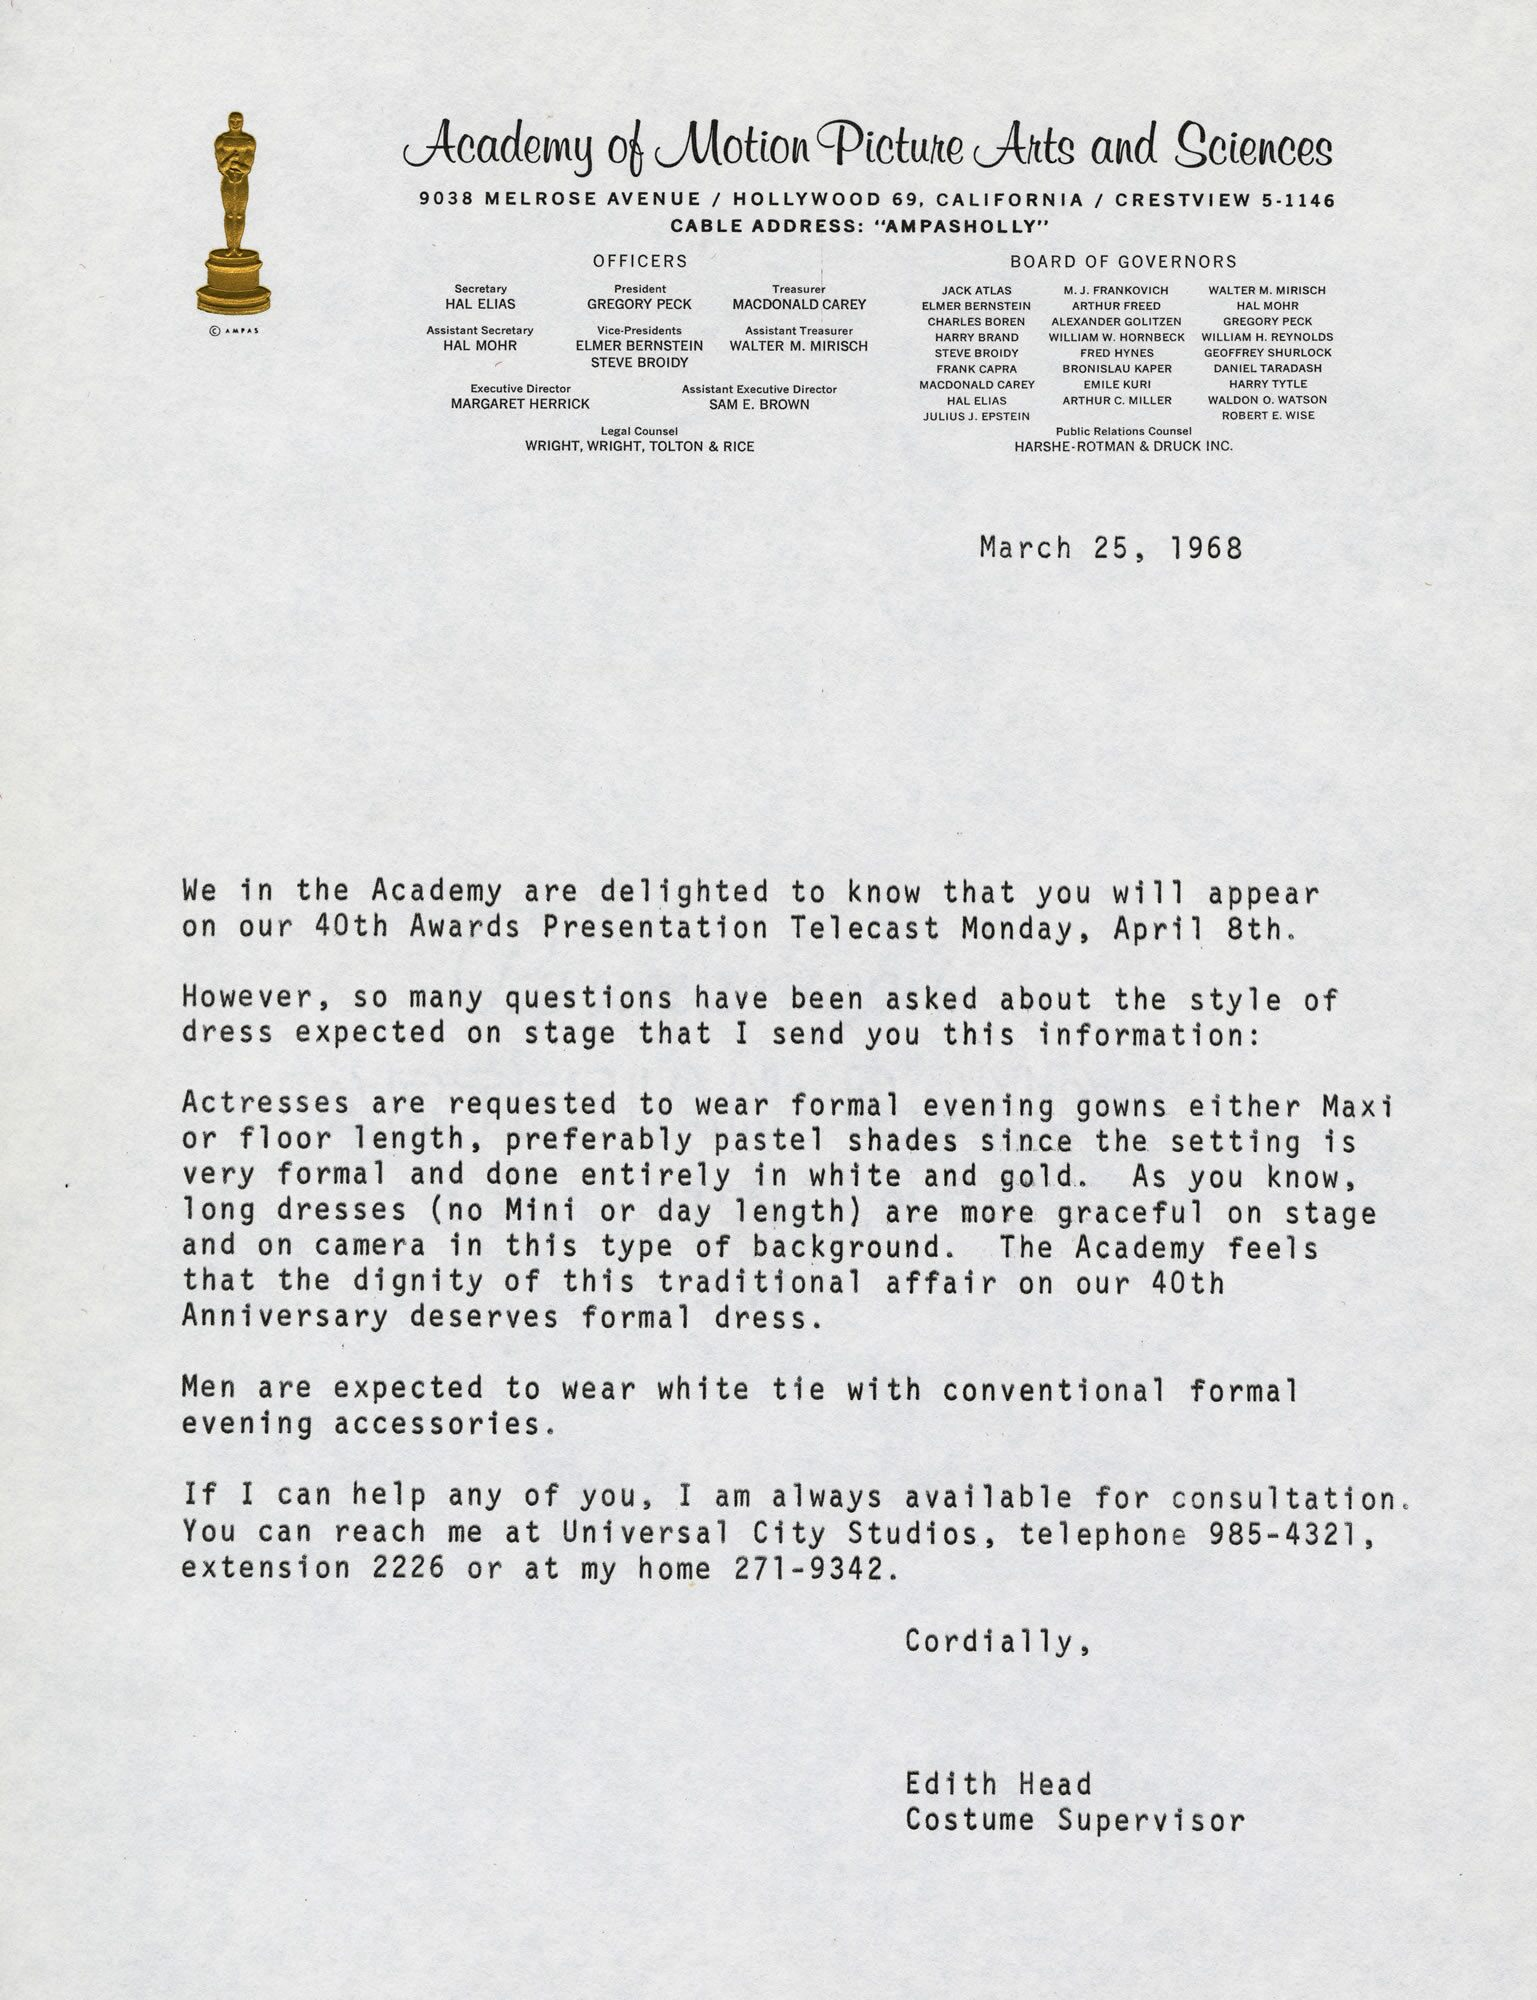 For the 1968 Academy Awards